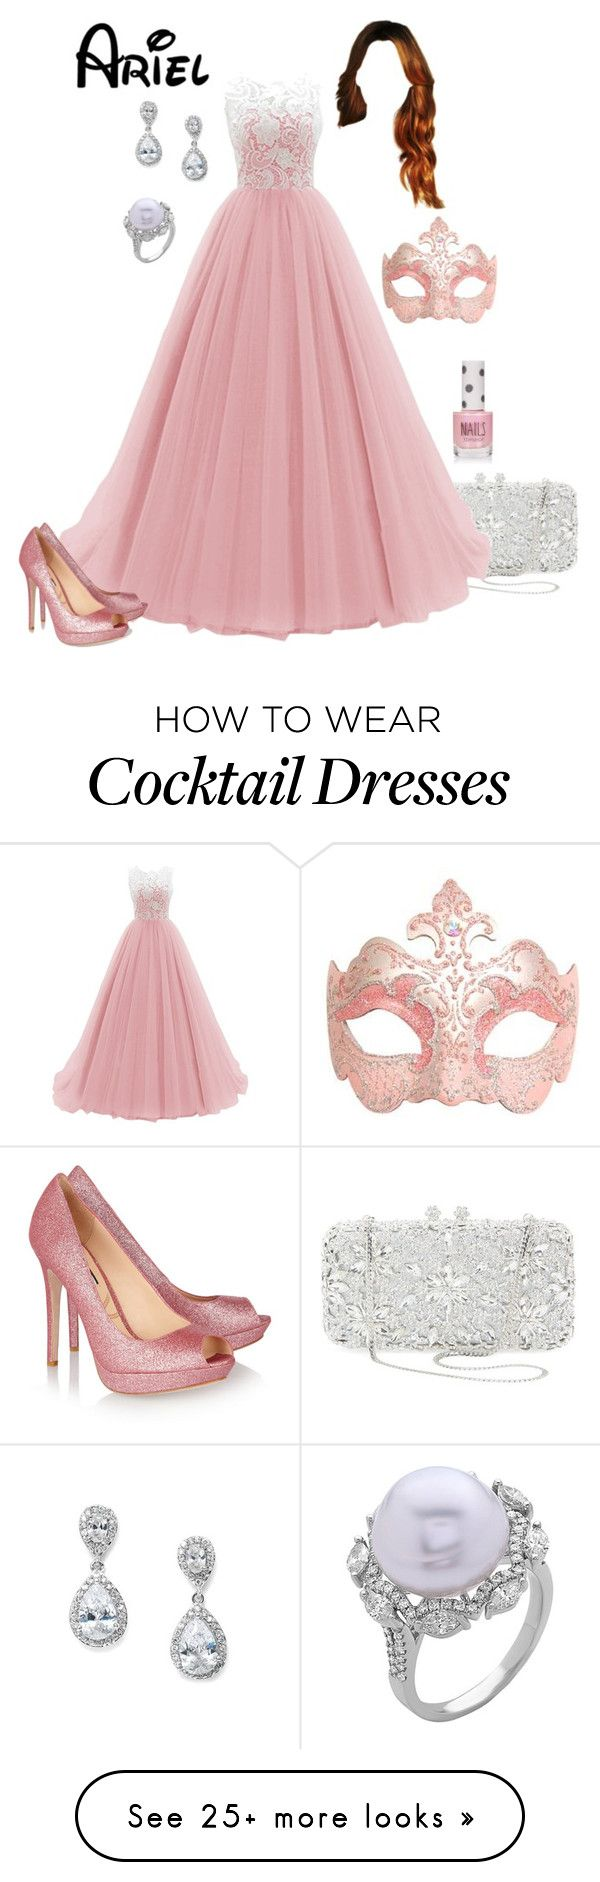 """""""Disney - Ariel"""" by briony-jae on Polyvore featuring Natasha Couture, CO, Lucy Choi London and Topshop"""